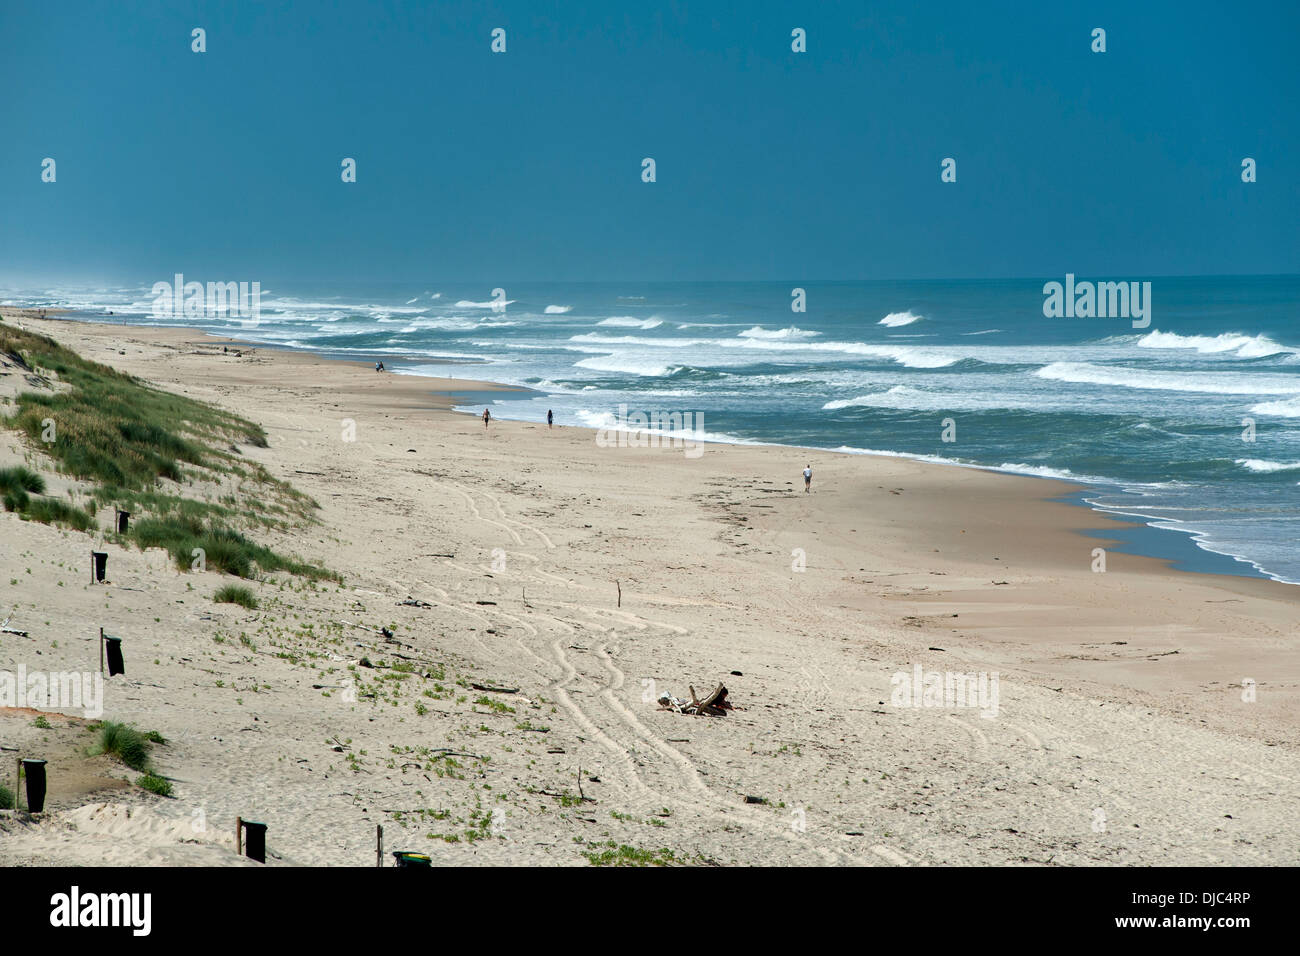 Le Pin Sec beach in the Gironde department of the Aquitaine region of southwestern France. - Stock Image